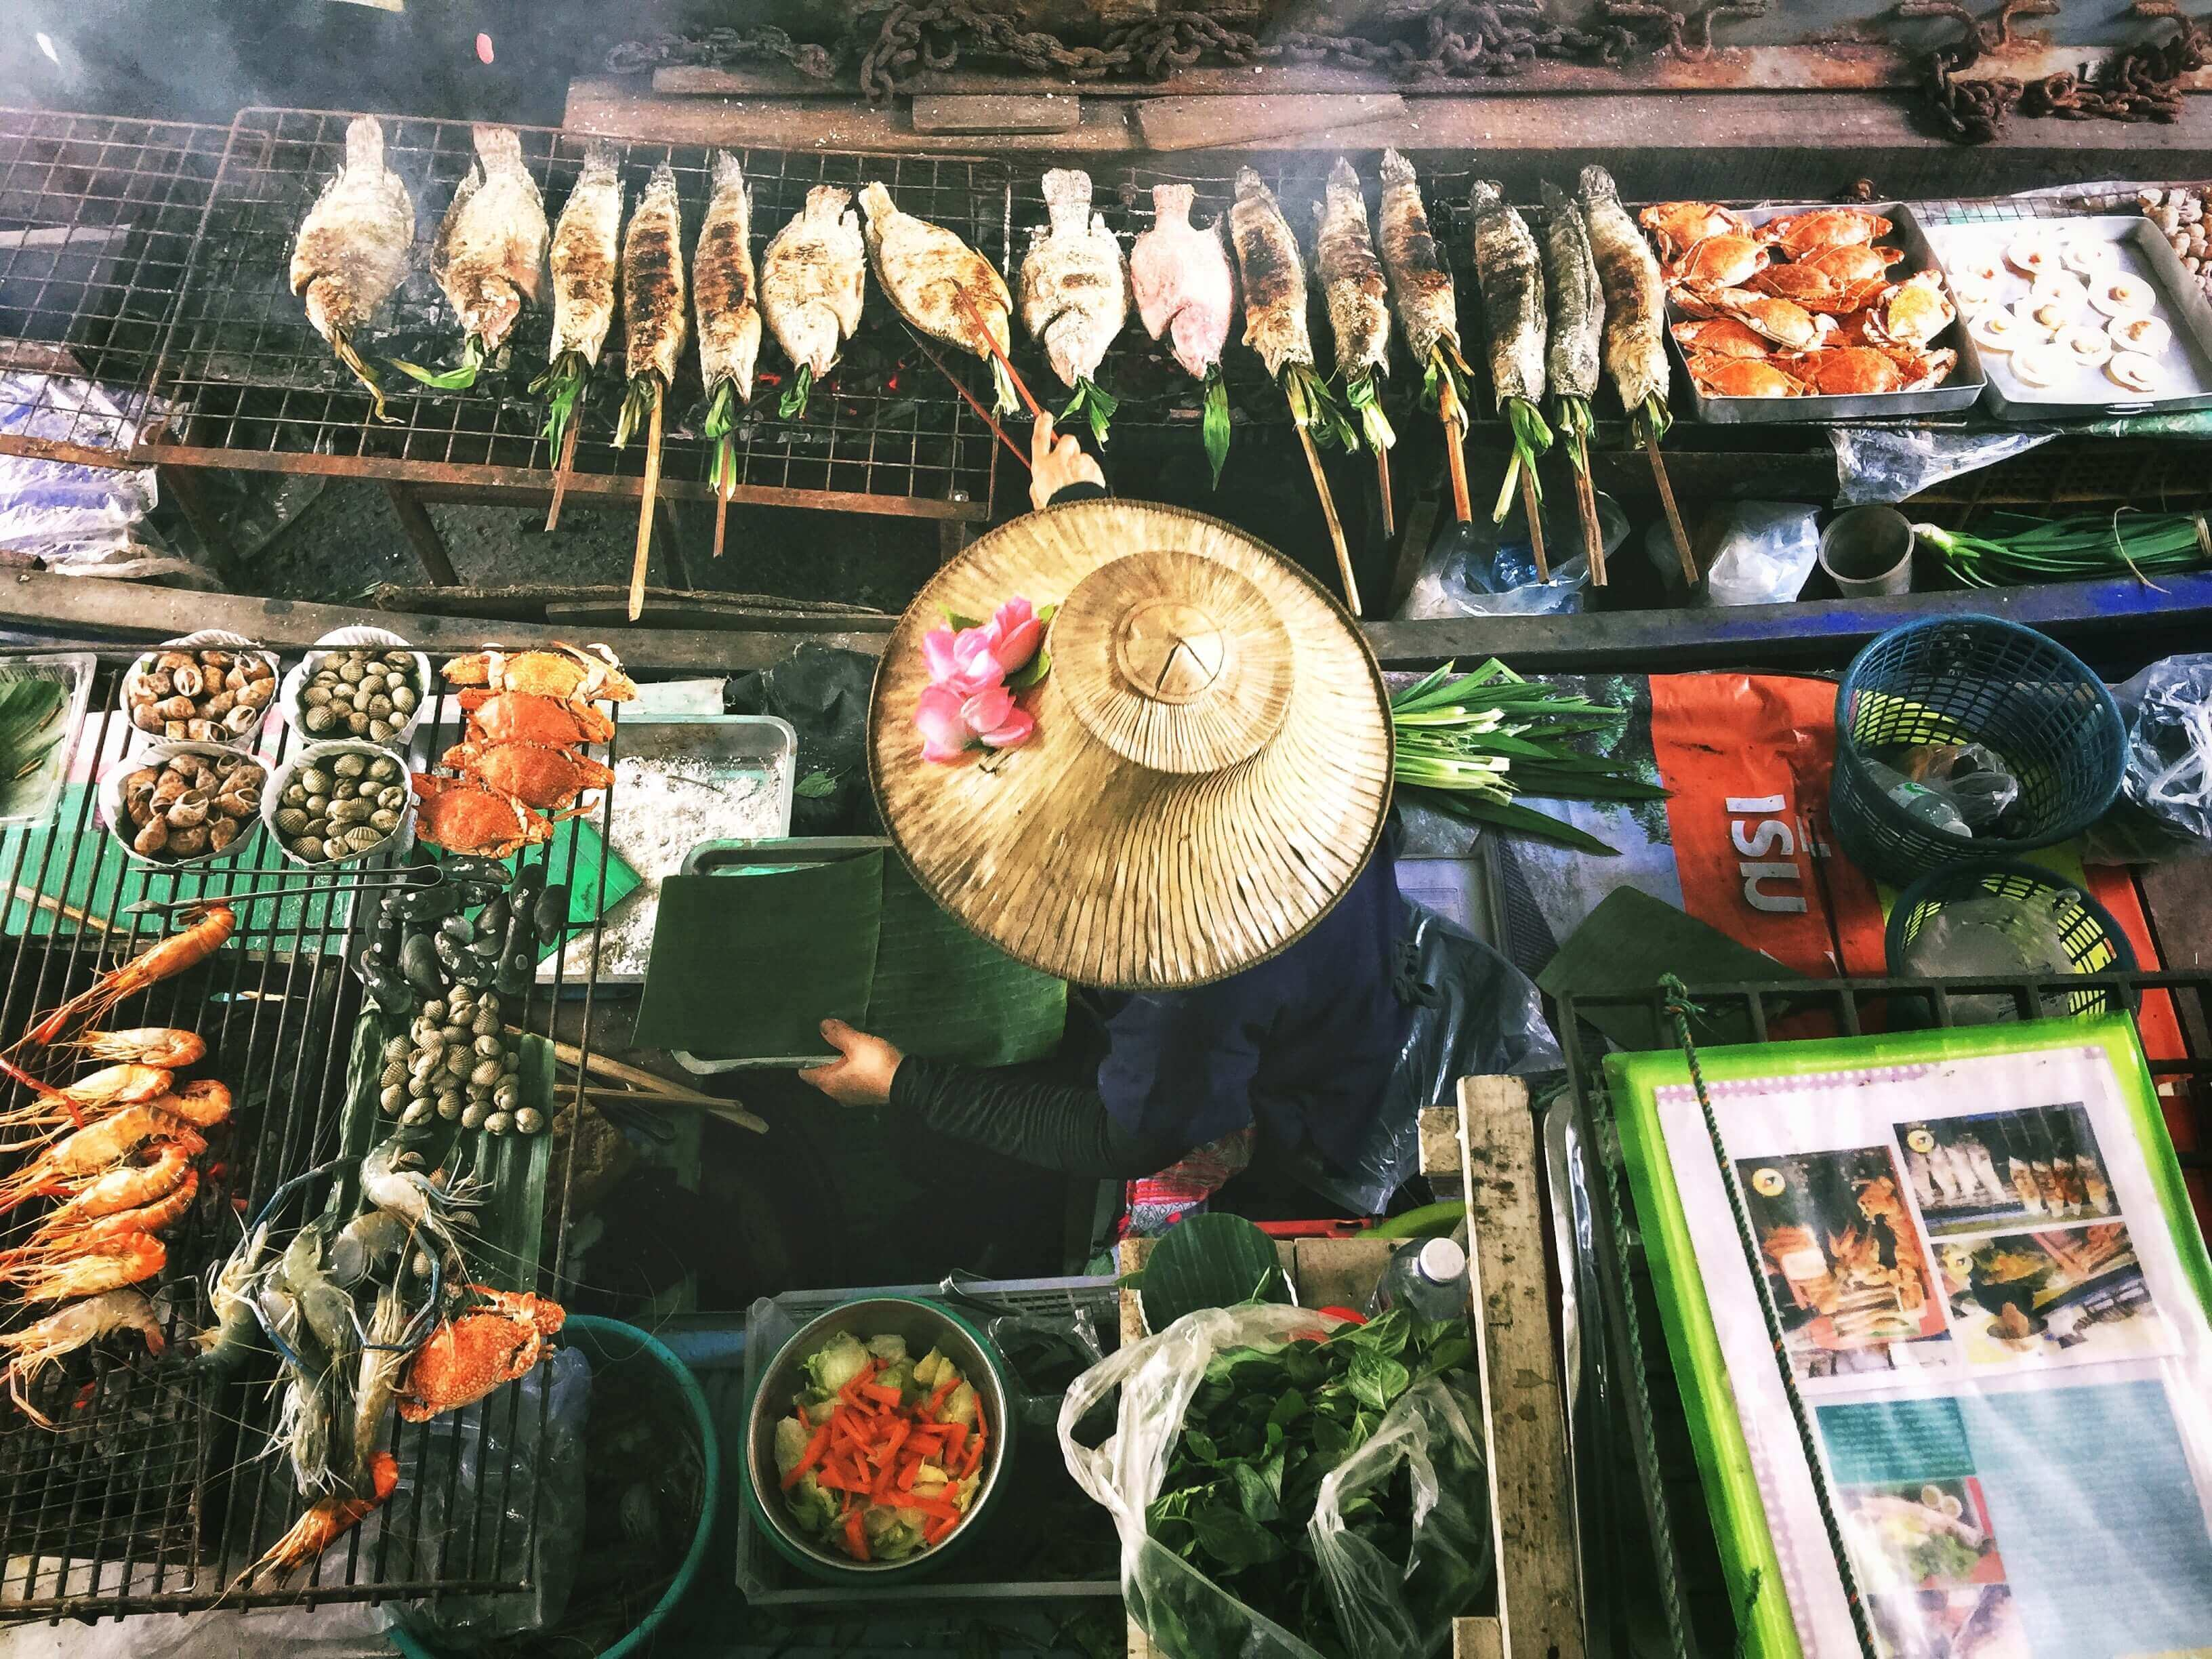 The bird's eye view of a Bangkok cook surrounded by grilled fish and seafood.